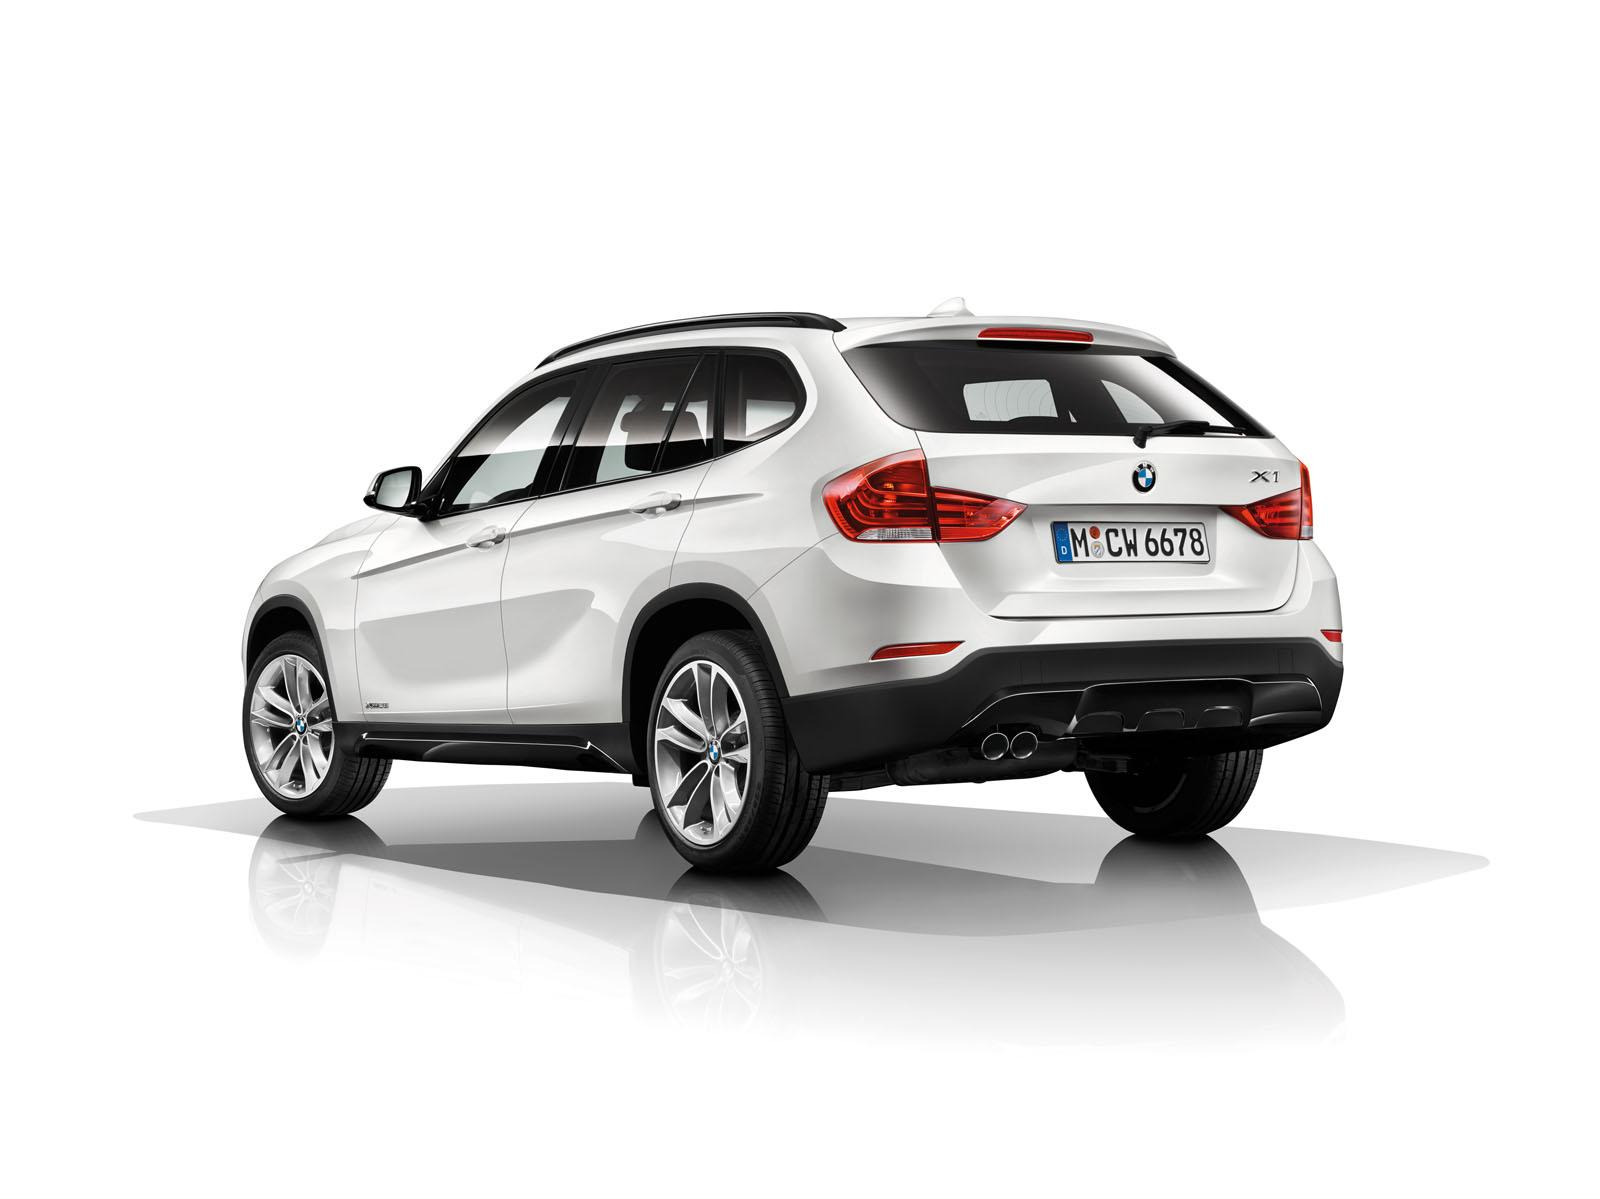 2014 bmw x1 pictures information and specs auto. Black Bedroom Furniture Sets. Home Design Ideas